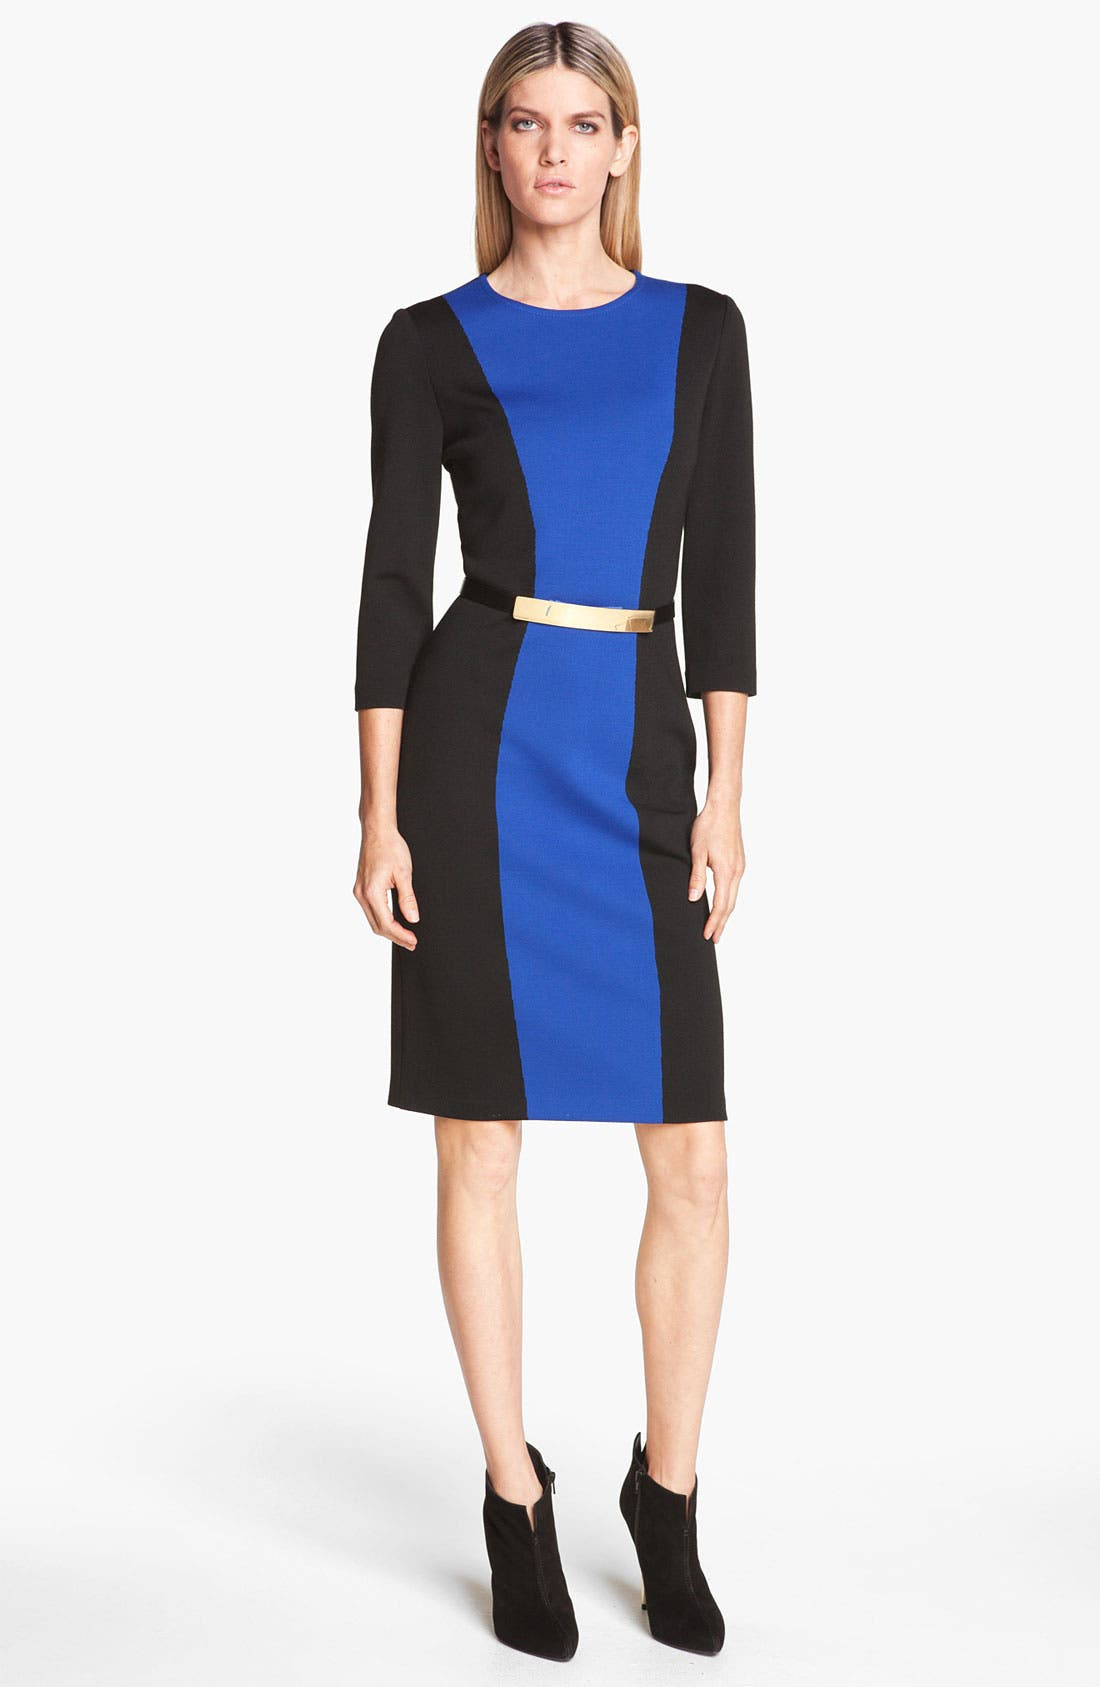 Alternate Image 1 Selected - St. John Collection Colorblock Milano Knit Dress